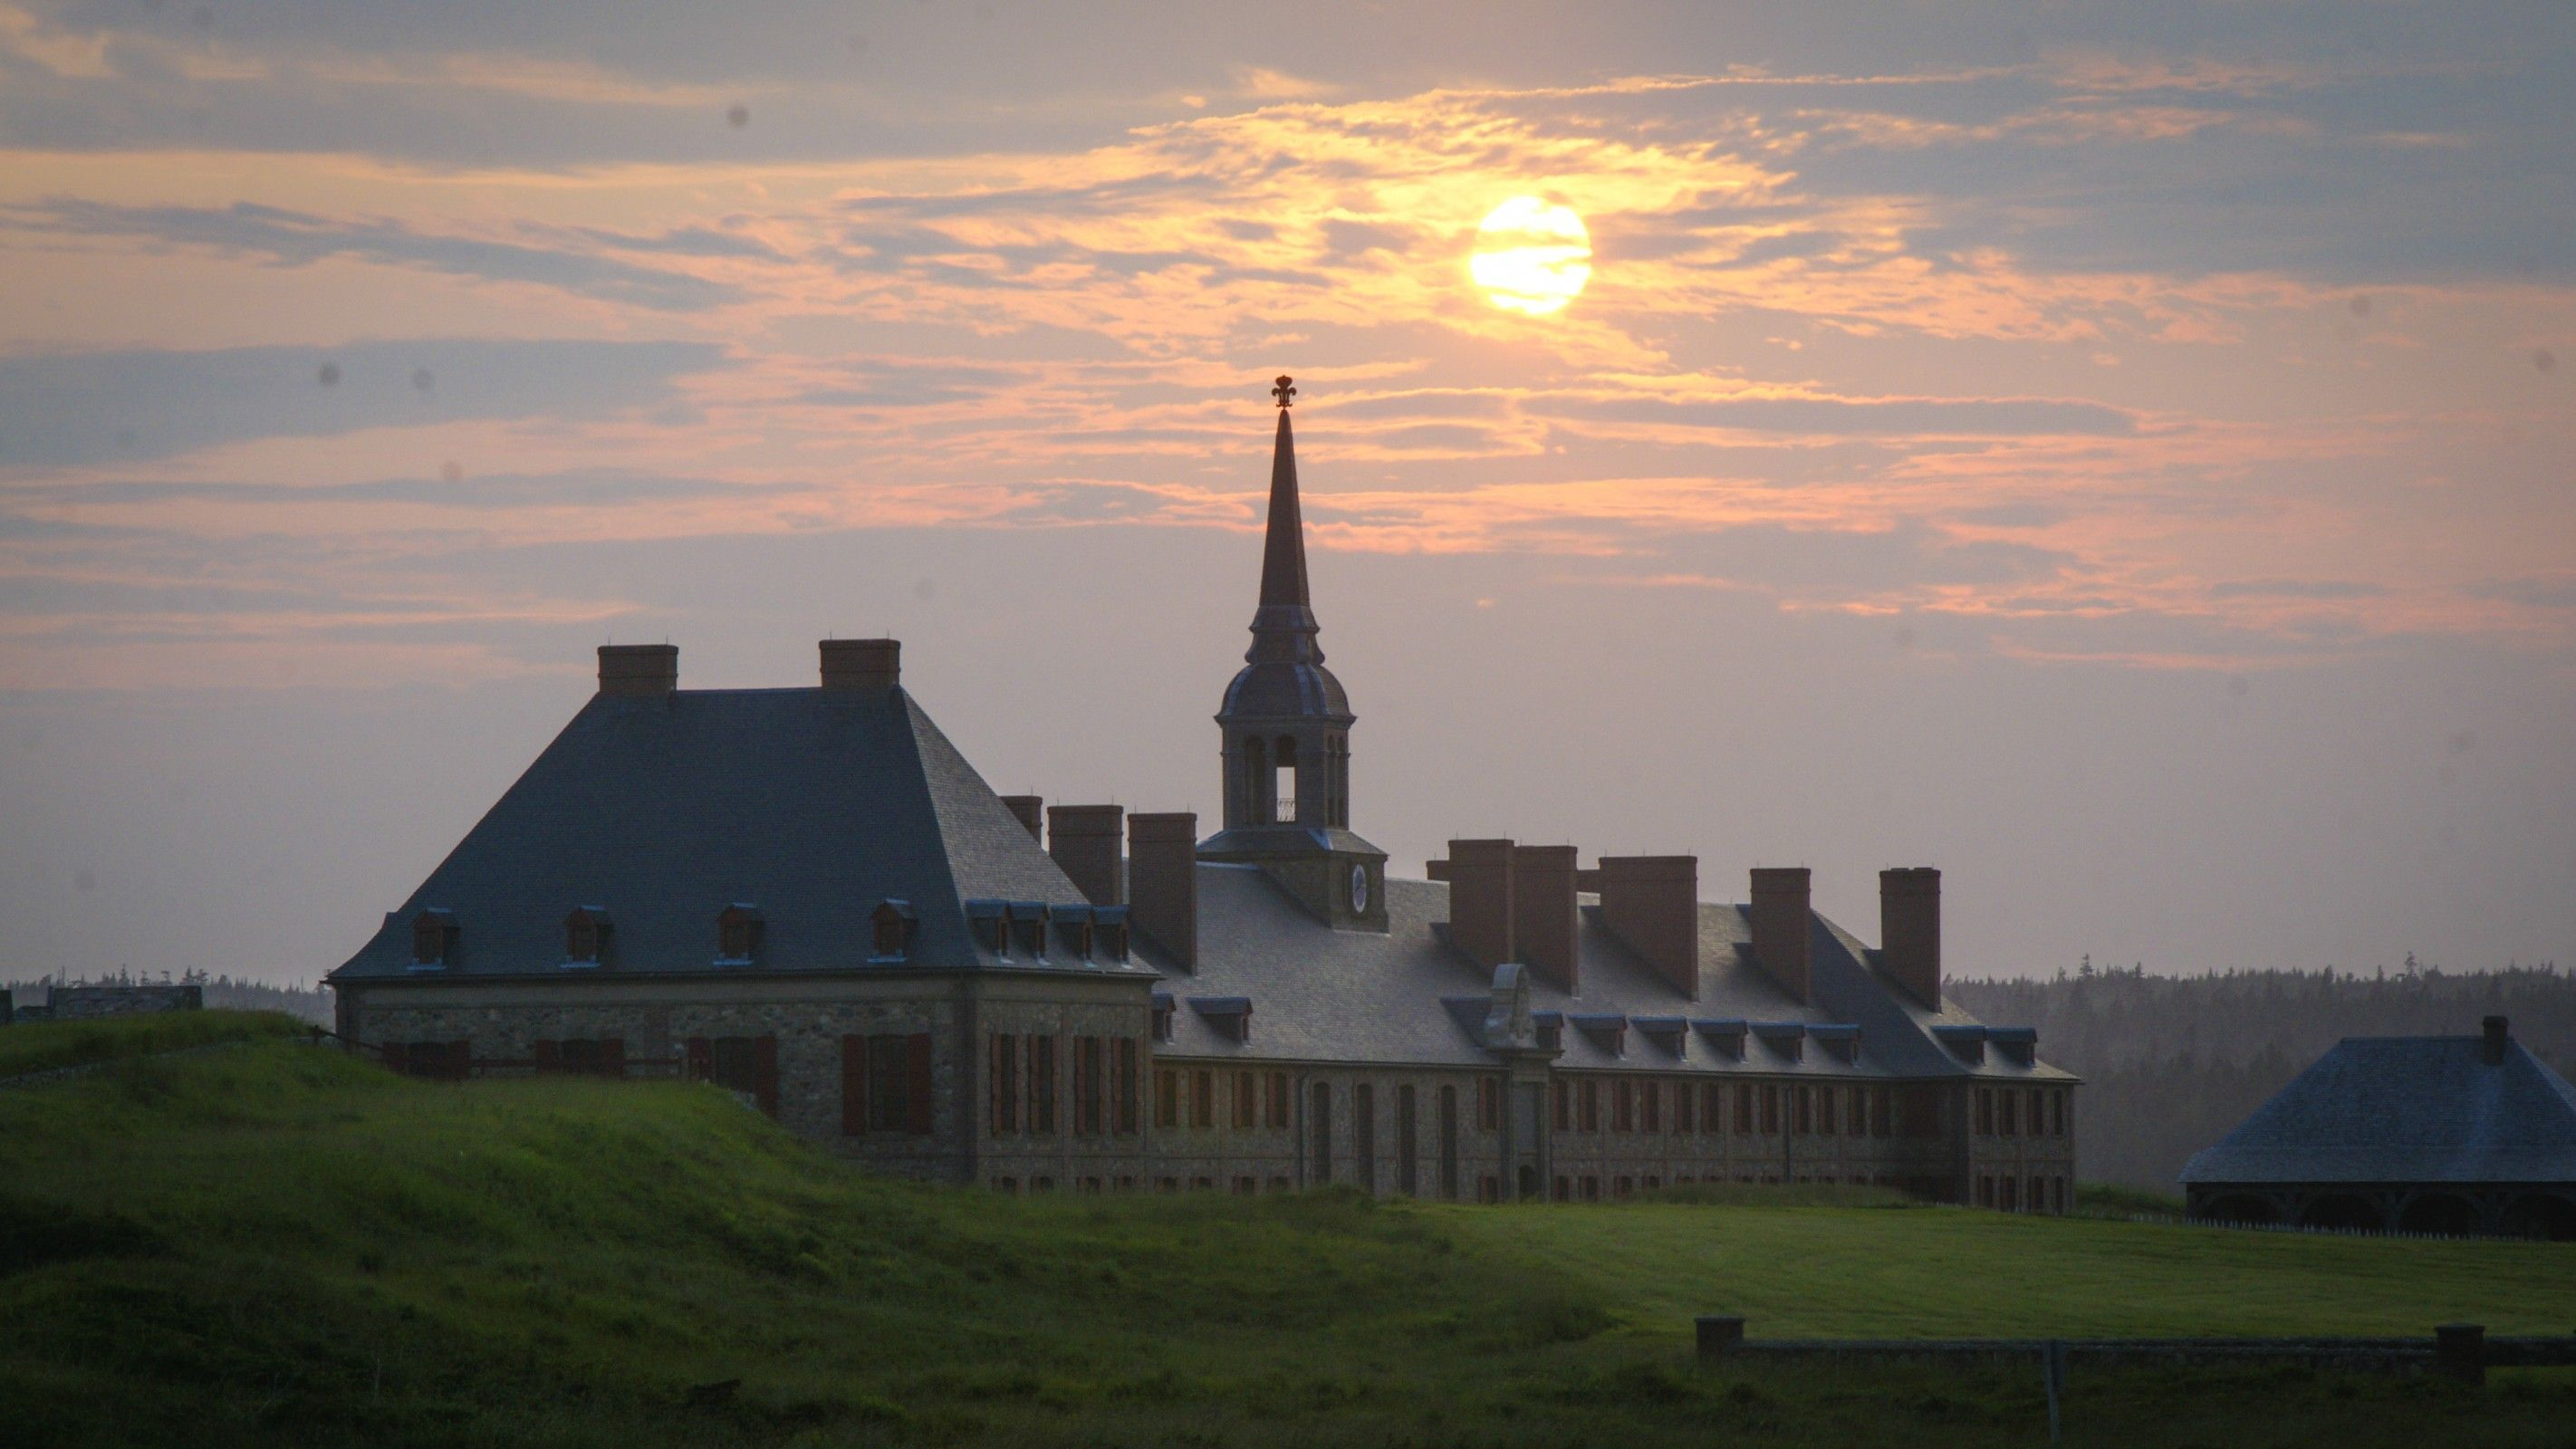 Fortress of Louisbourg National Historic Site, Louisbourg Nova Scotia Canada